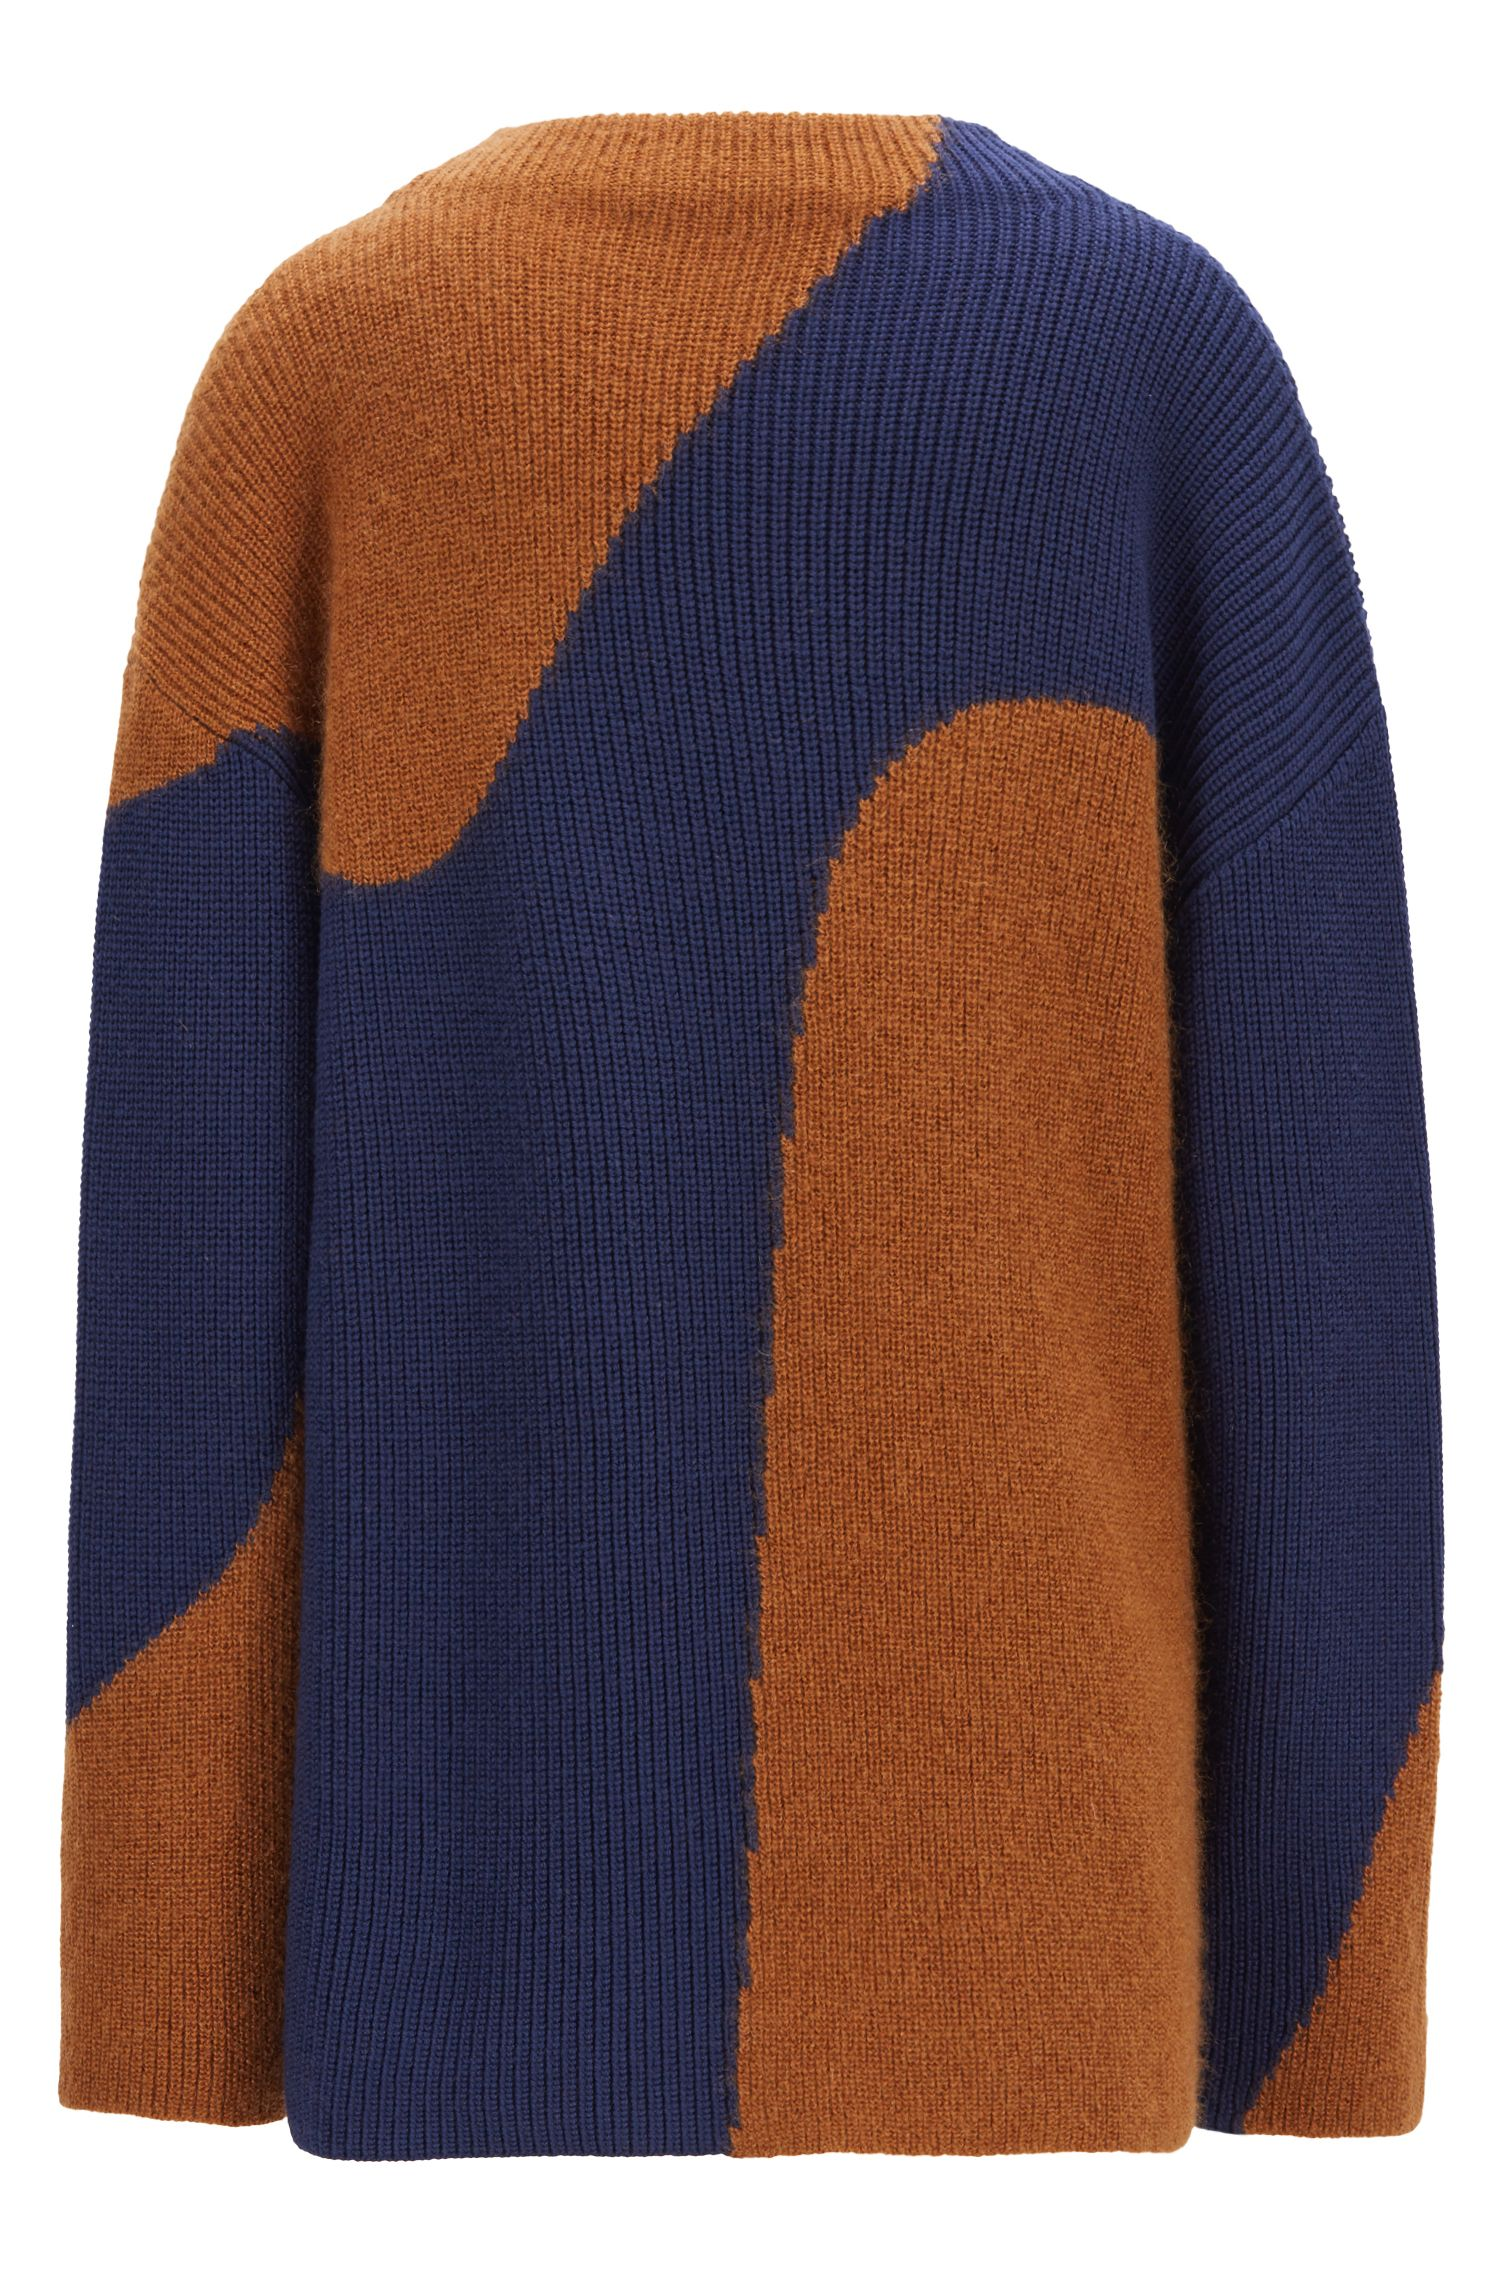 Relaxed-fit sweater in a wool blend with colorblocking, Patterned